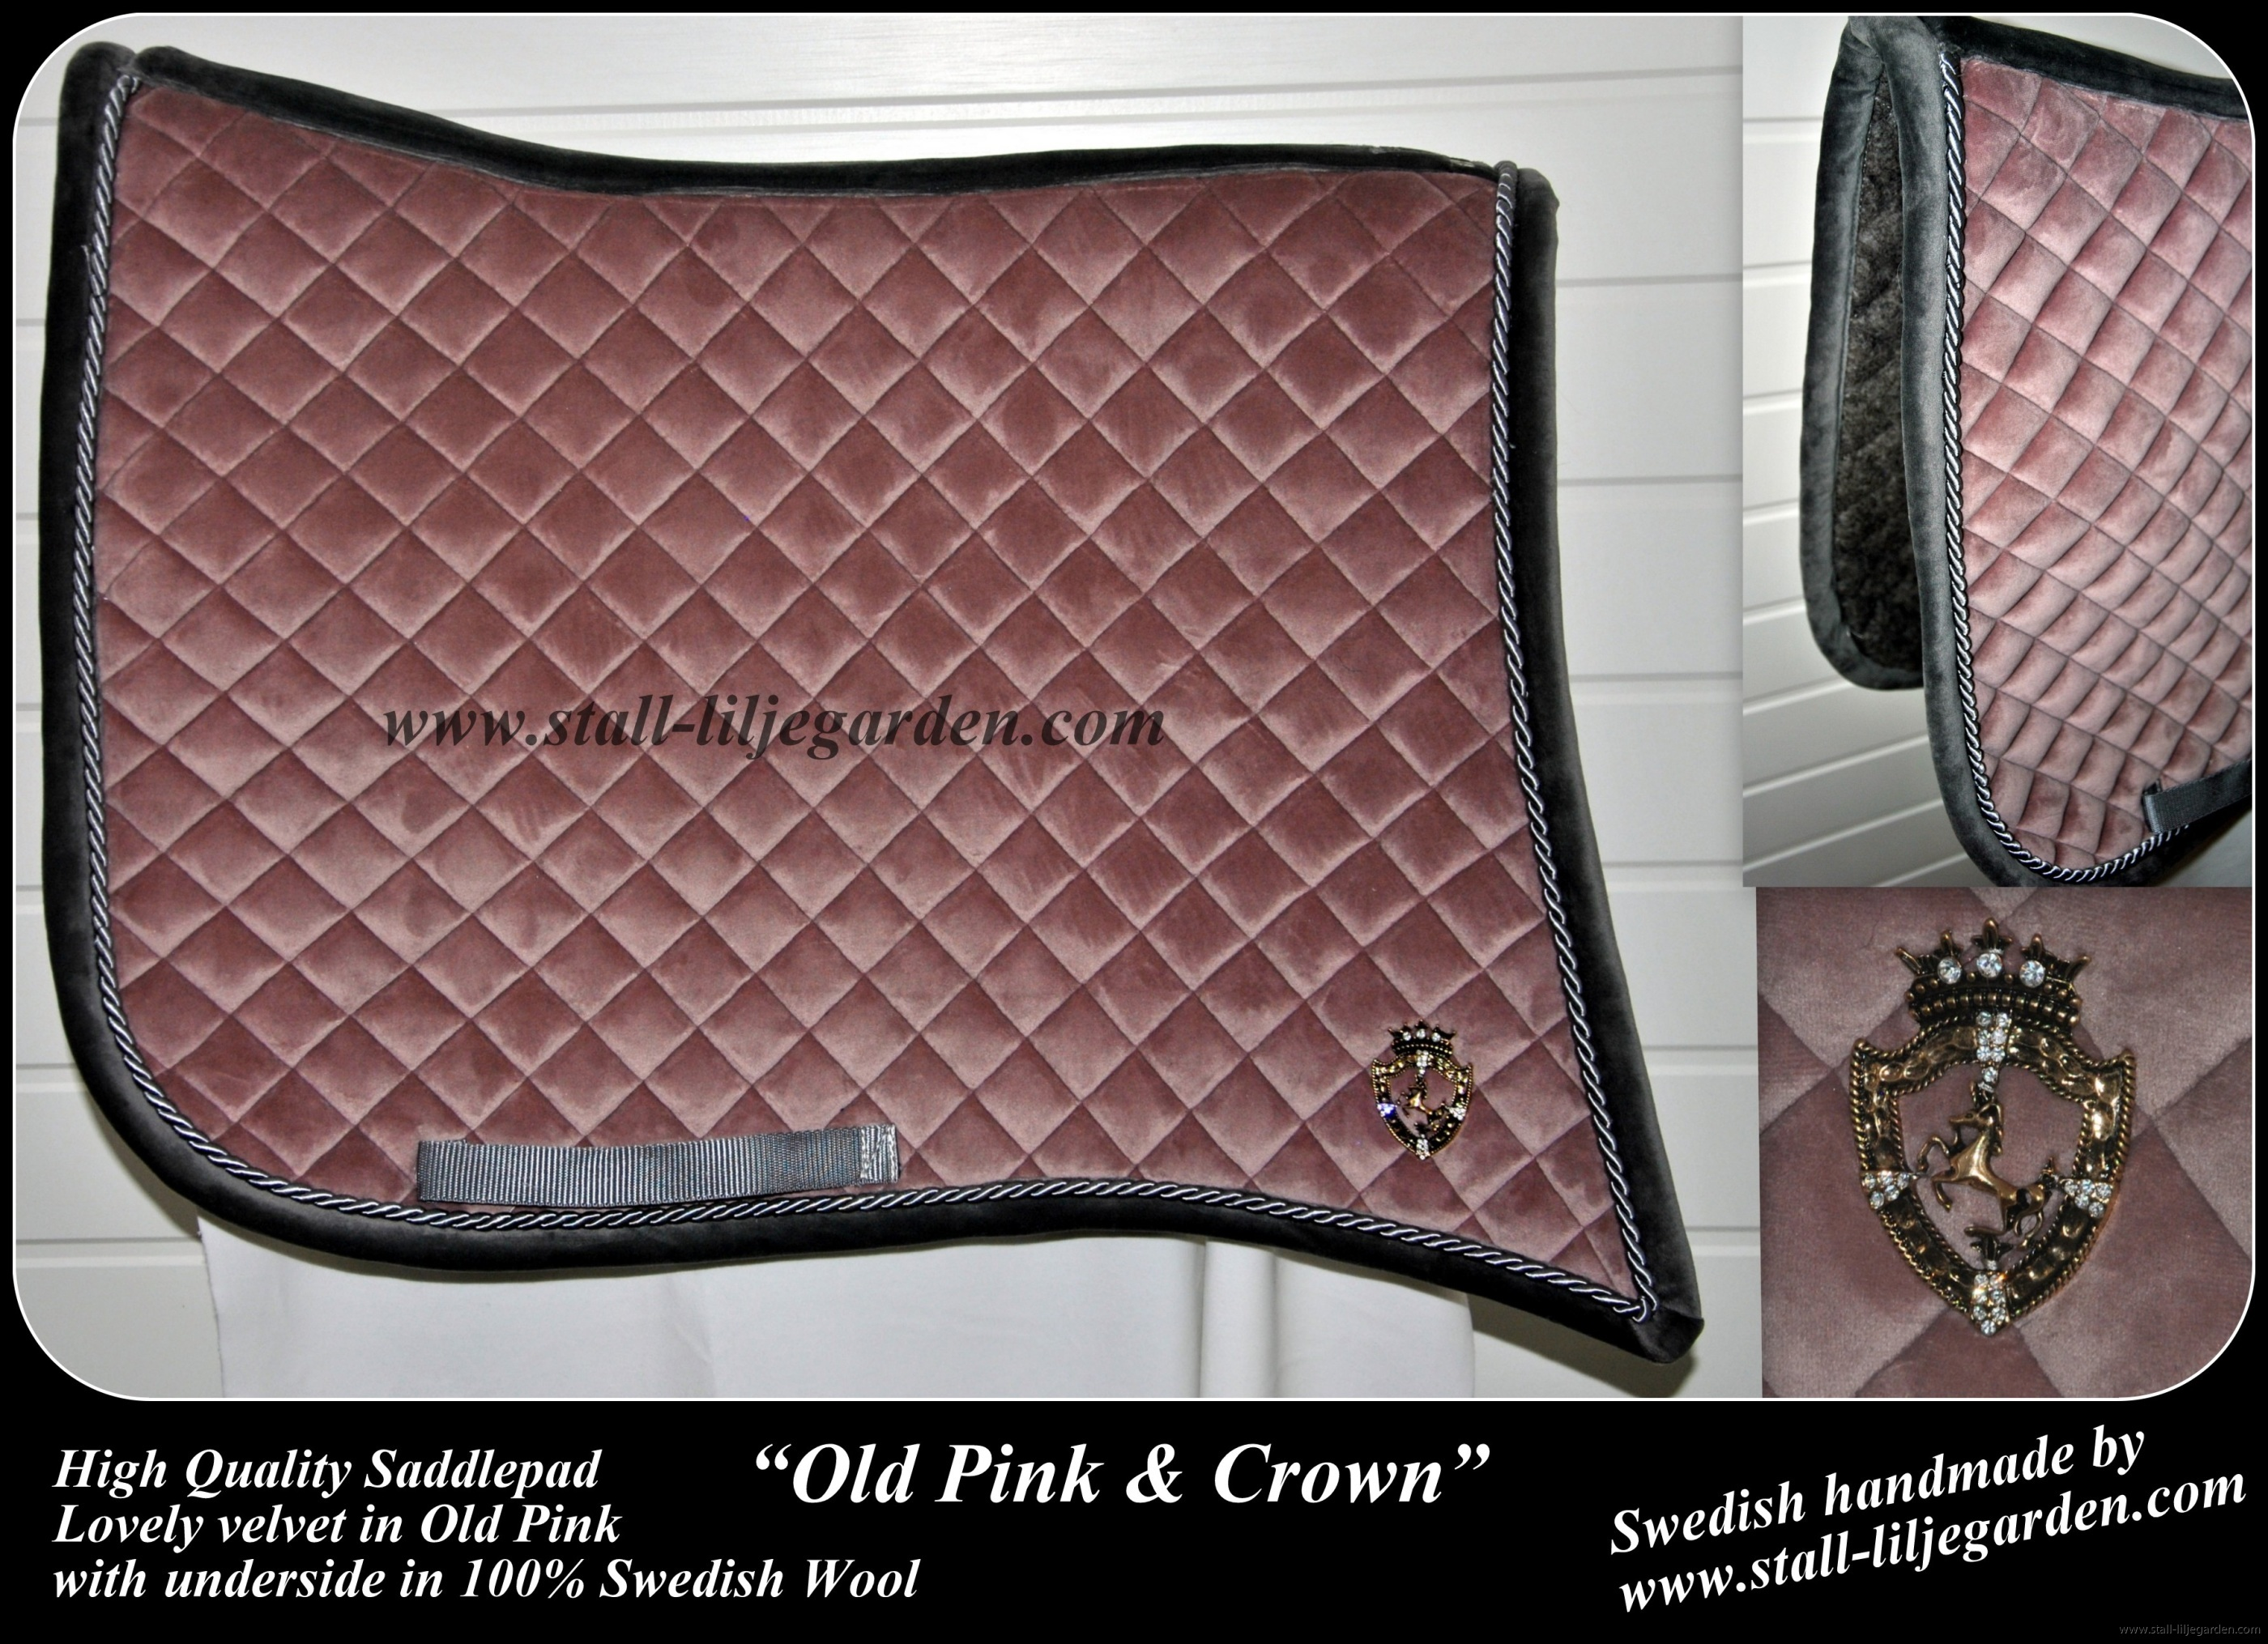 Old Pink & Crown